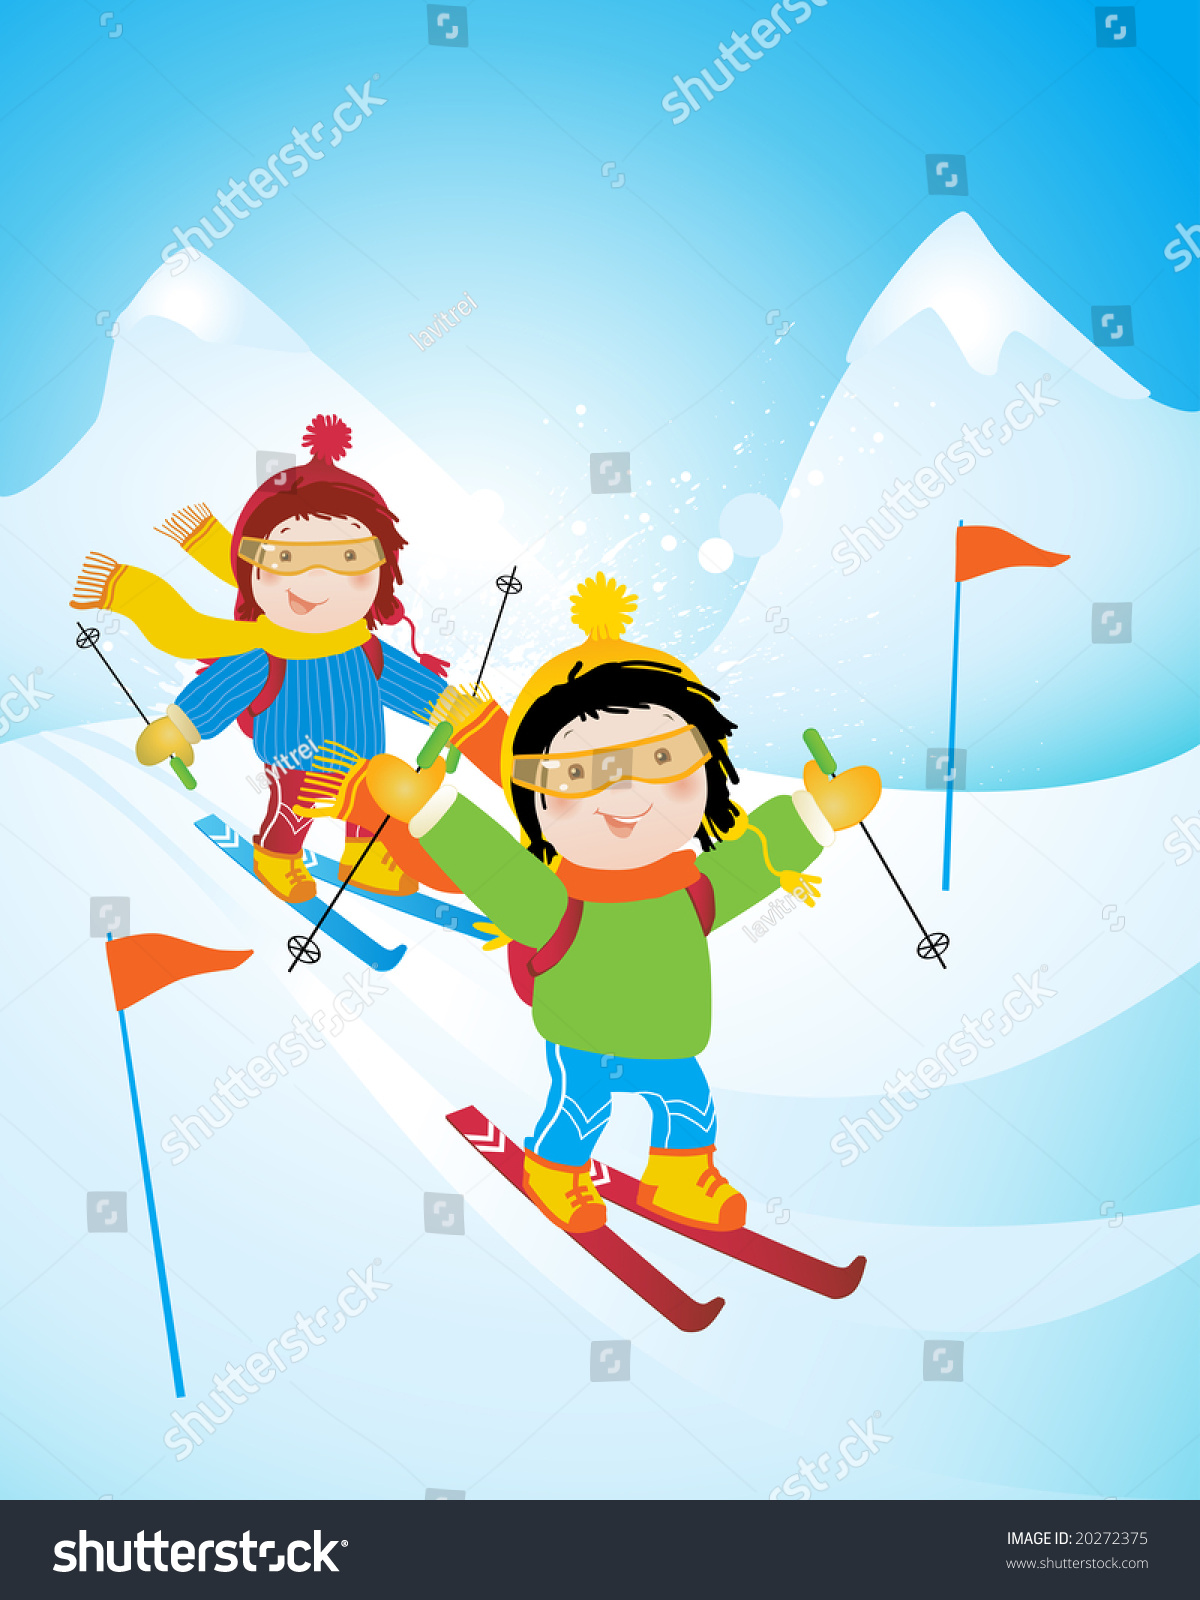 Children Winter Holiday Ski Competition Mountains Stock